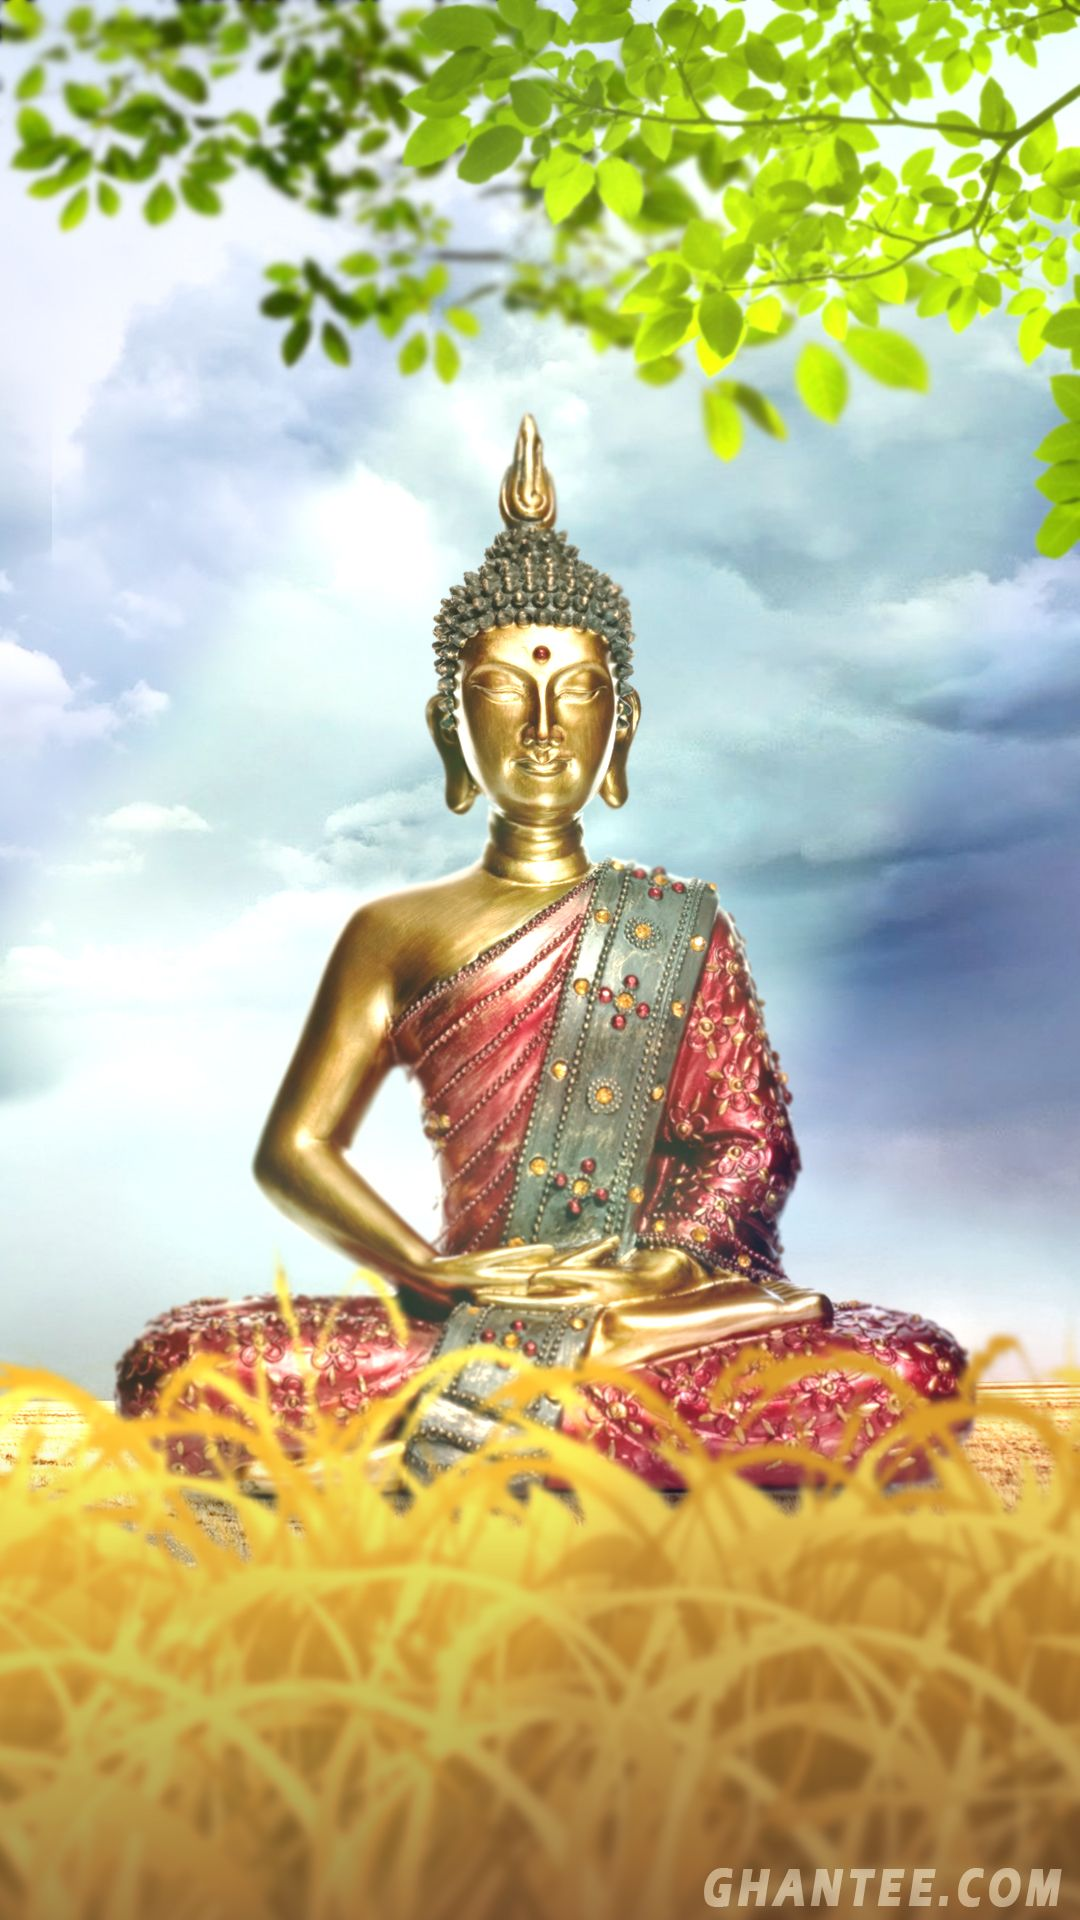 Buddha Hd Phone Wallpaper For Android And Ios Devices In 2020 Hd Phone Wallpapers Phone Wallpaper Android Wallpaper